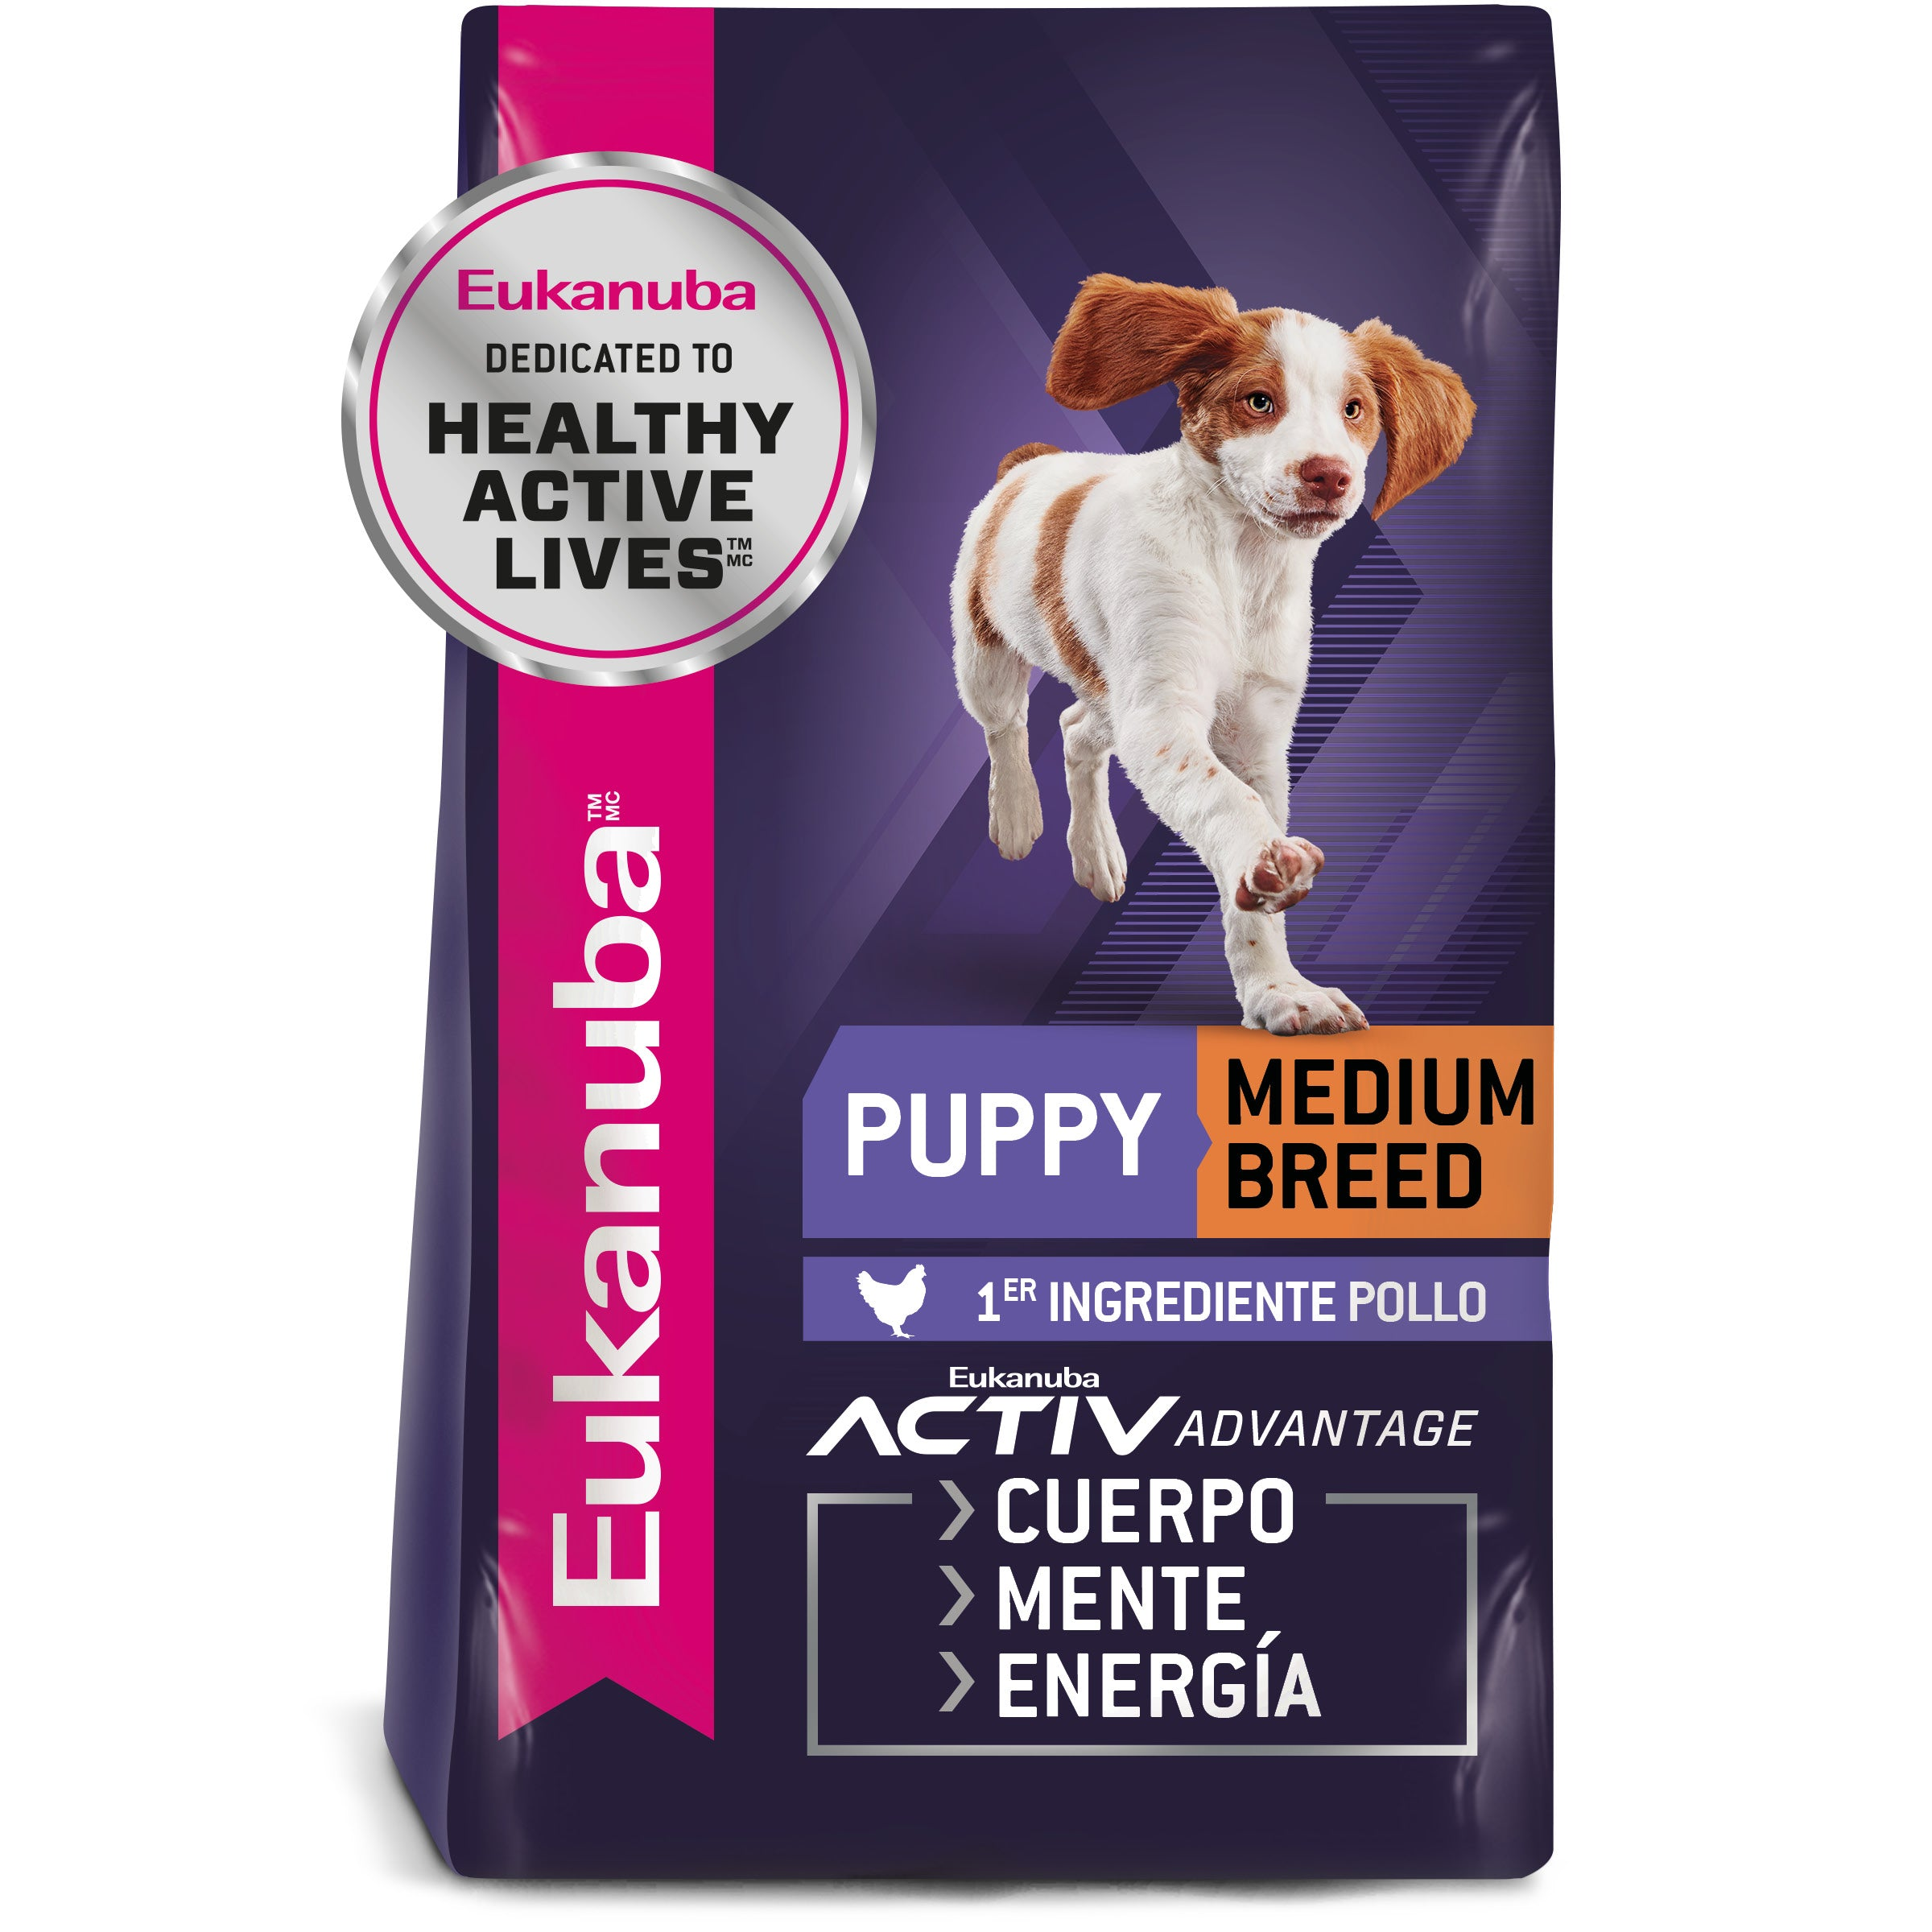 Eukanuba Puppy Medium Breed - Alimento para Perros